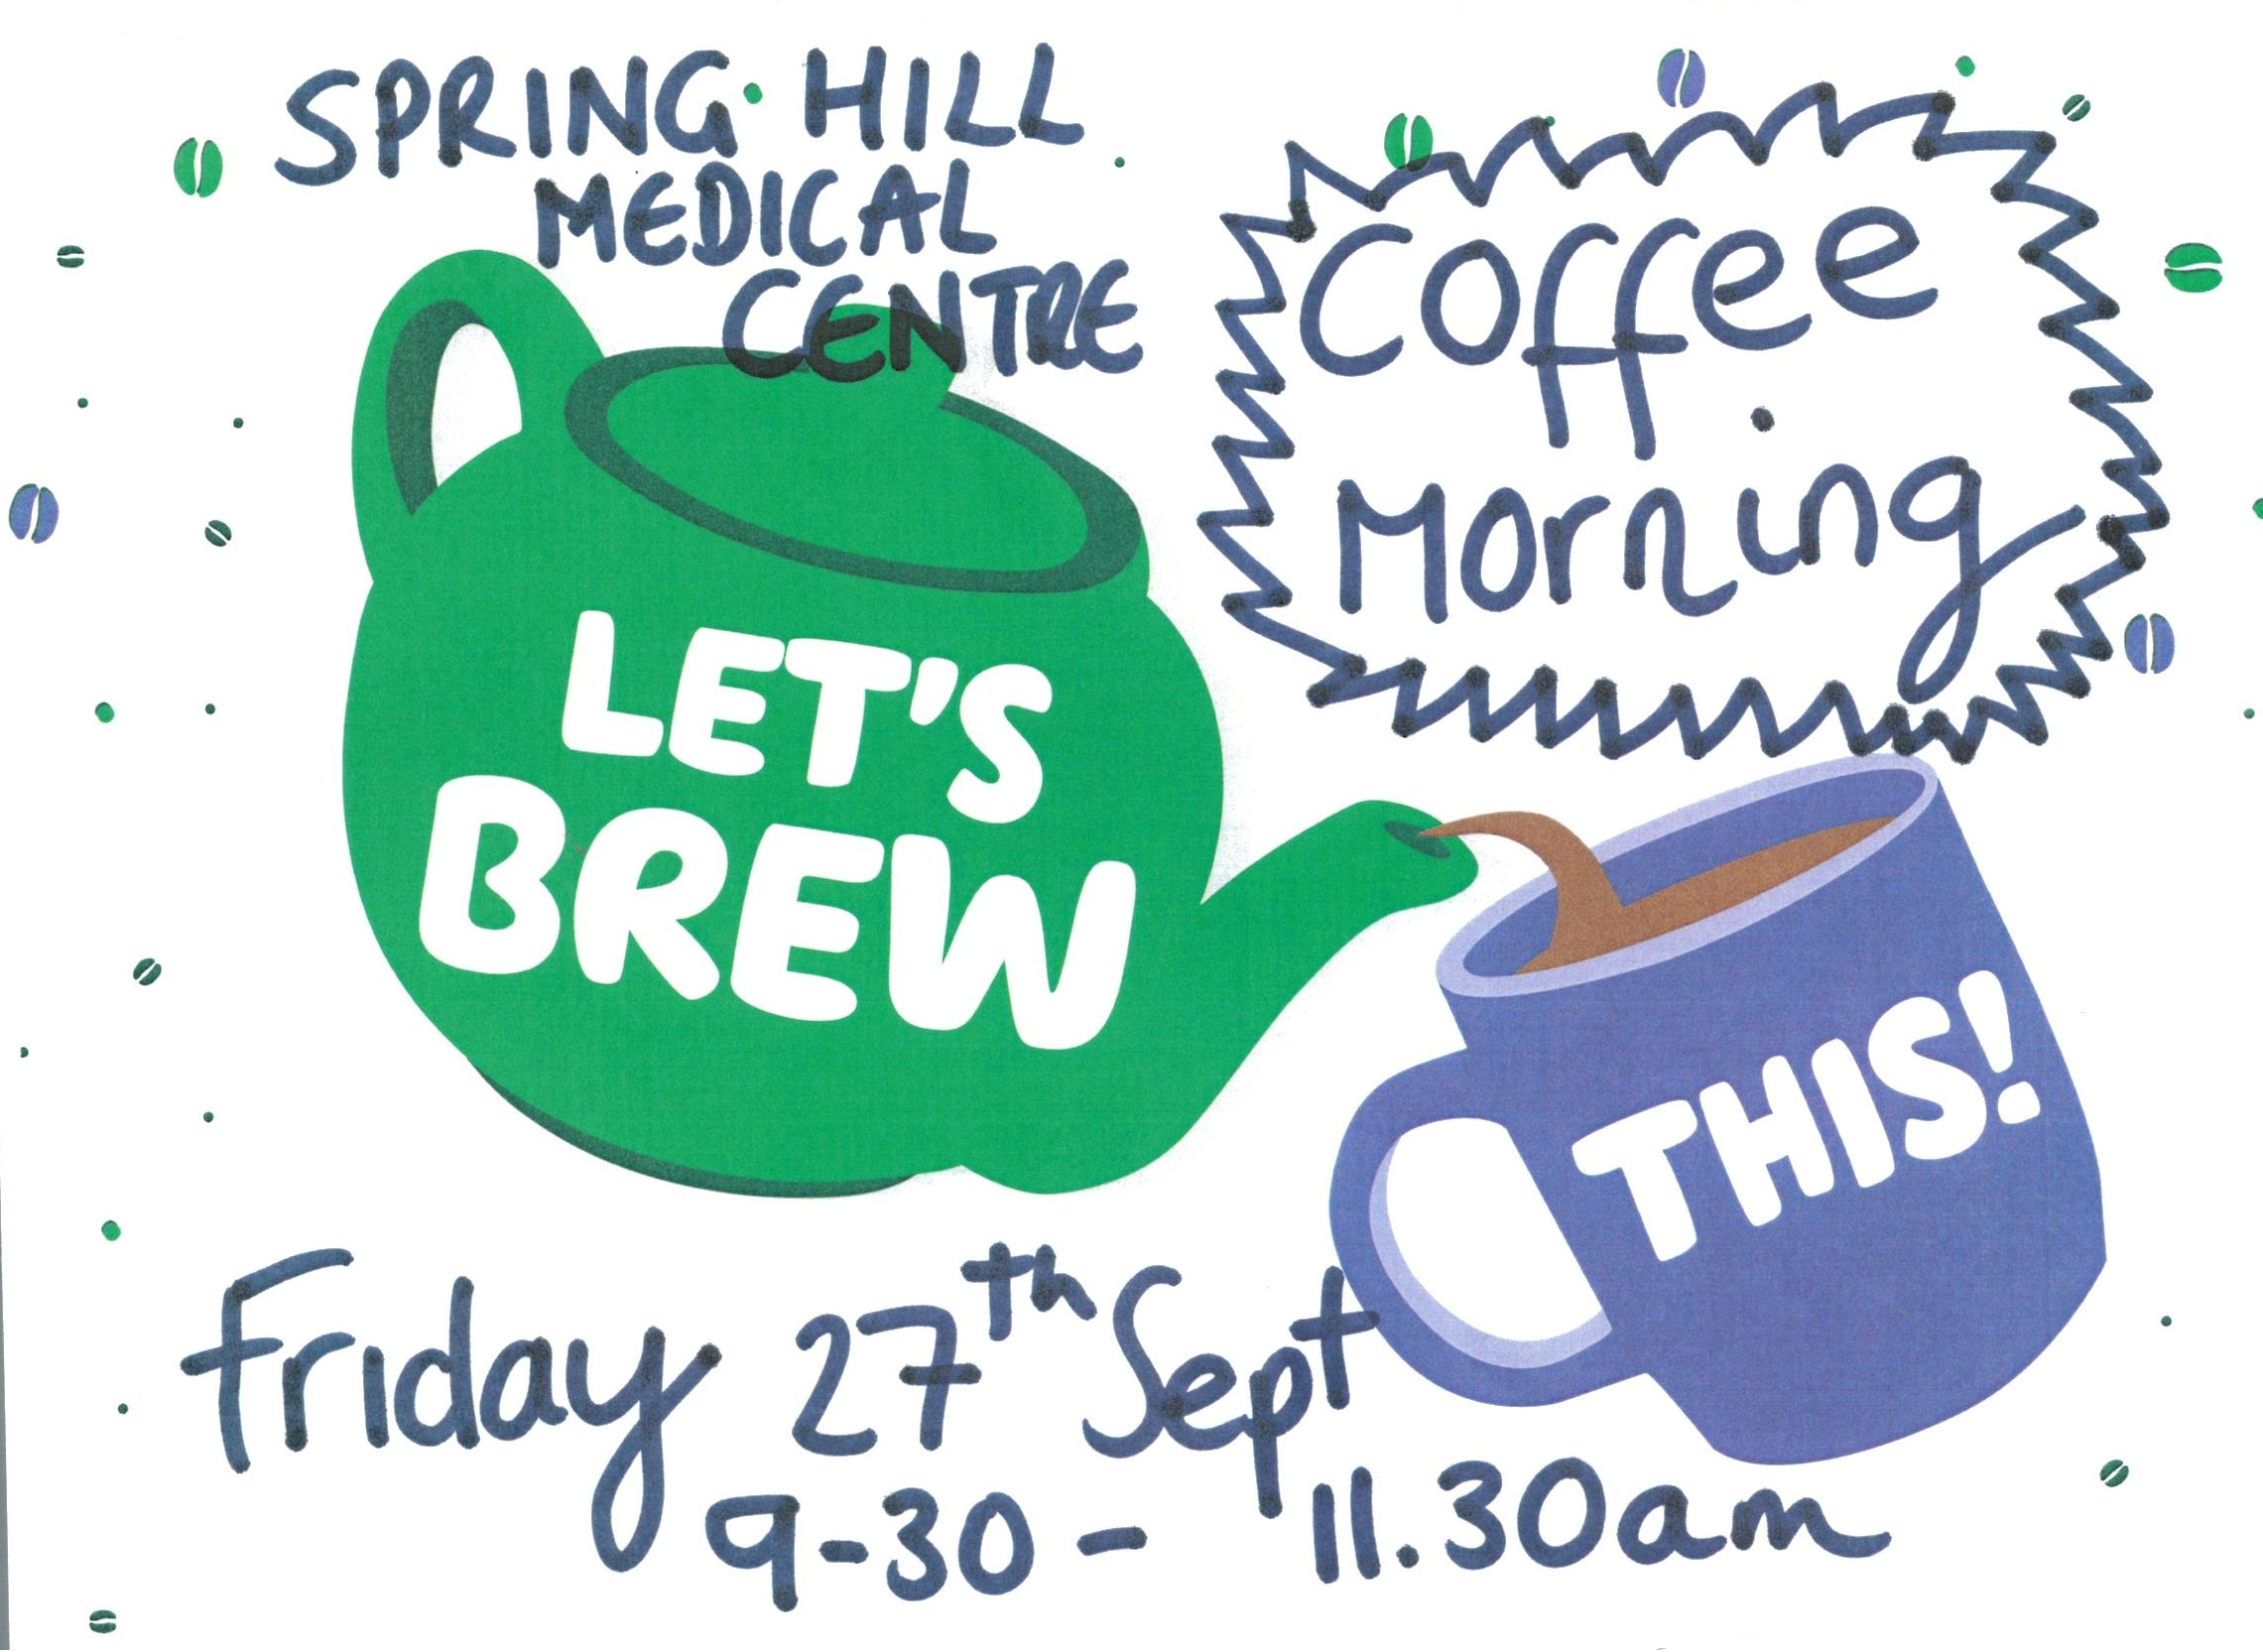 Spring Hill Medical Centre Coffee Morning Friday 27th September 9.30am - 11.30am